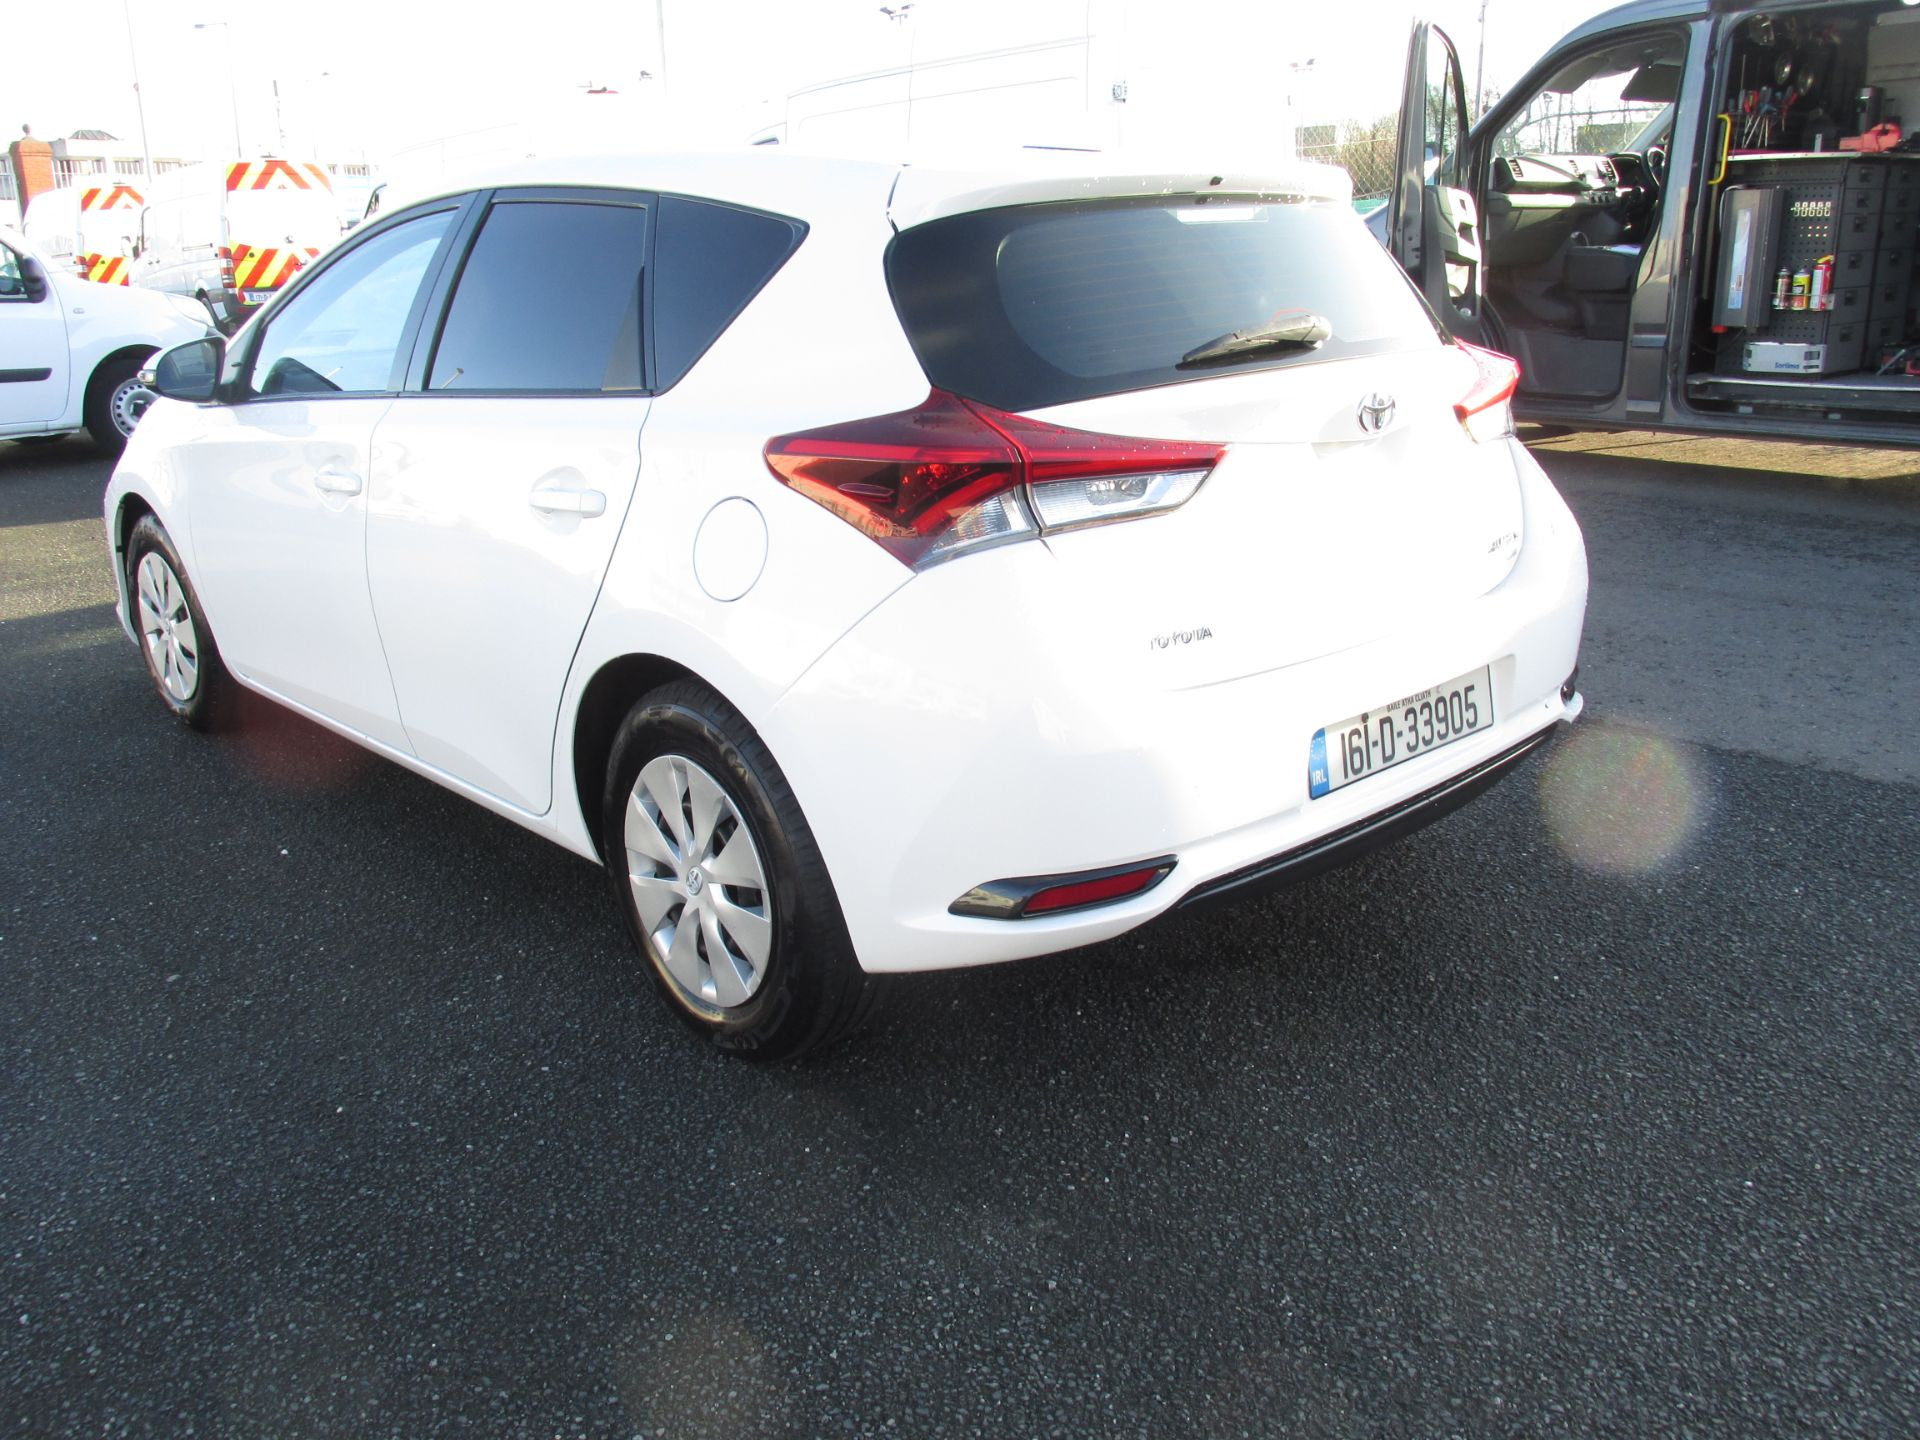 2016 Toyota Auris 1.4d-4d Terra 4DR click and collect call sales for more info (161D33905) Thumbnail 5